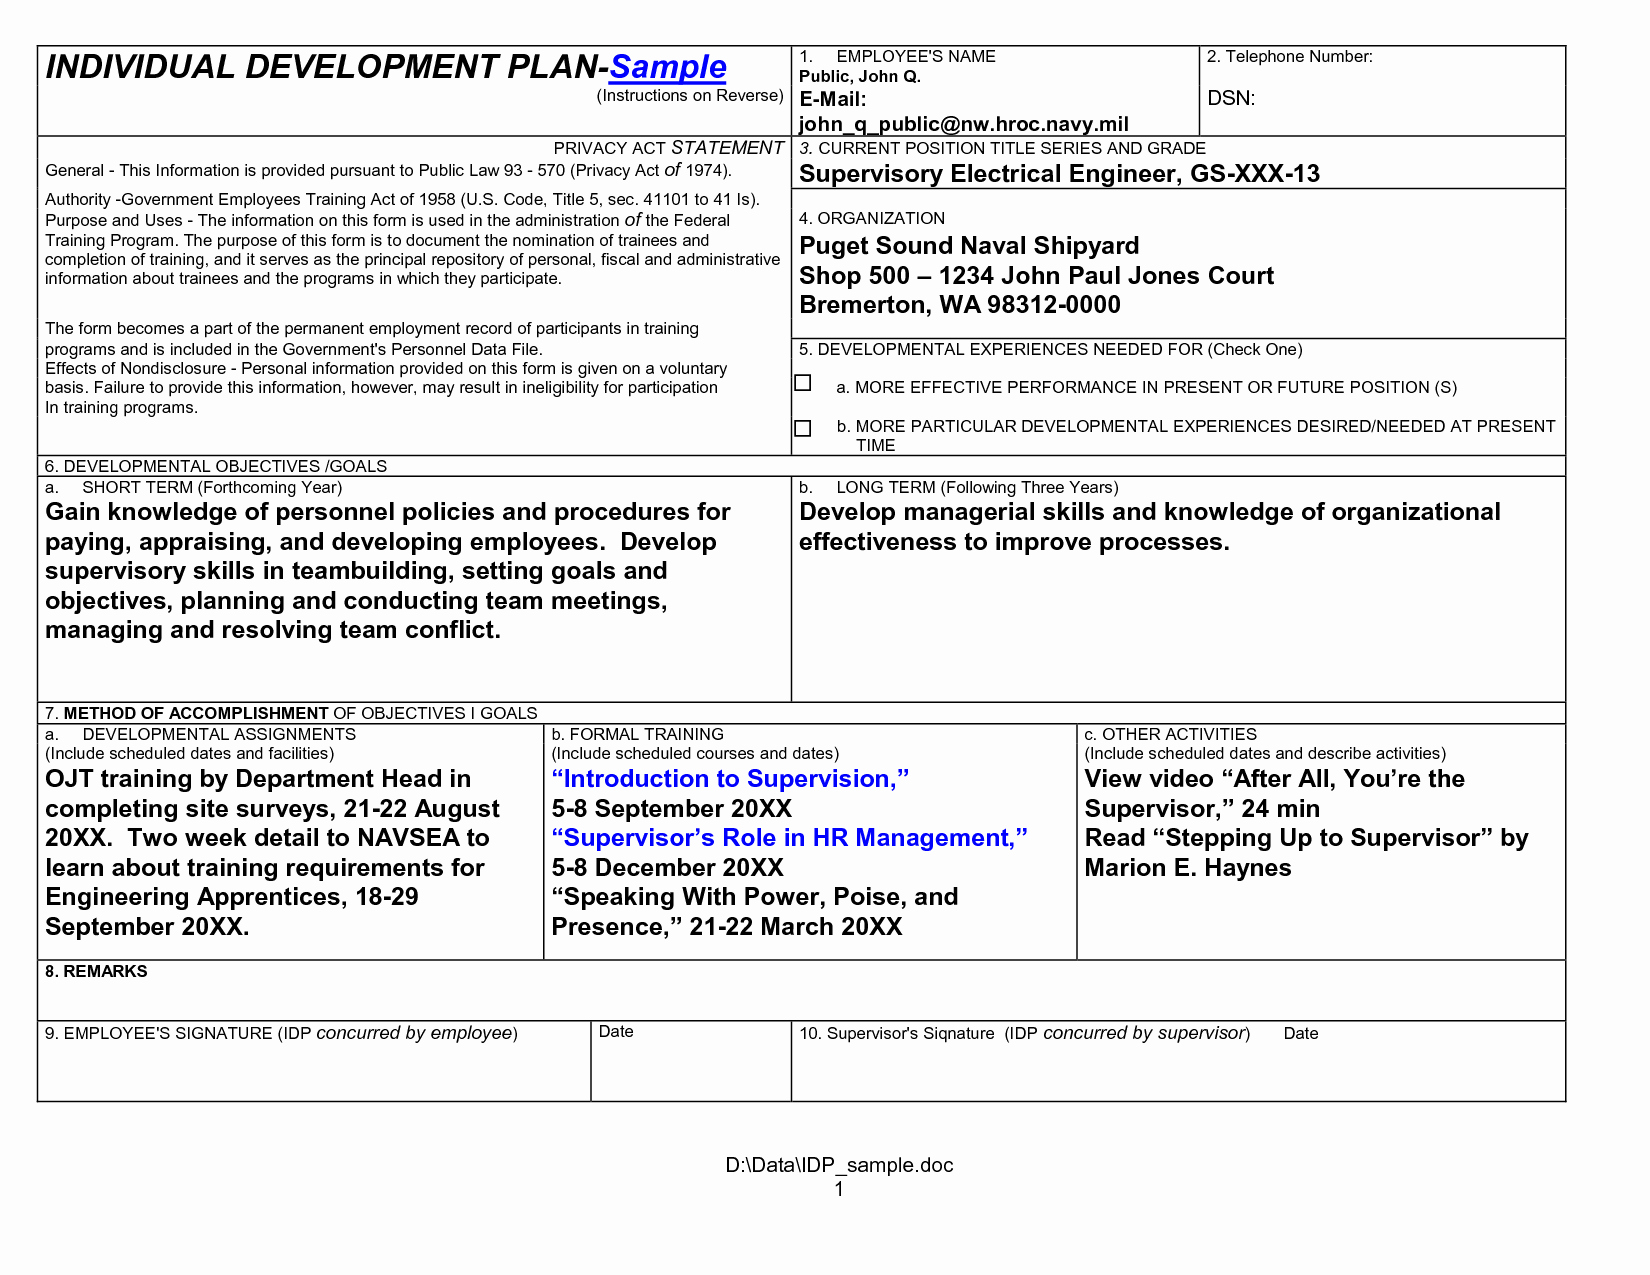 Personal Development Plan Sample Awesome Individual Development Plan Examples for It